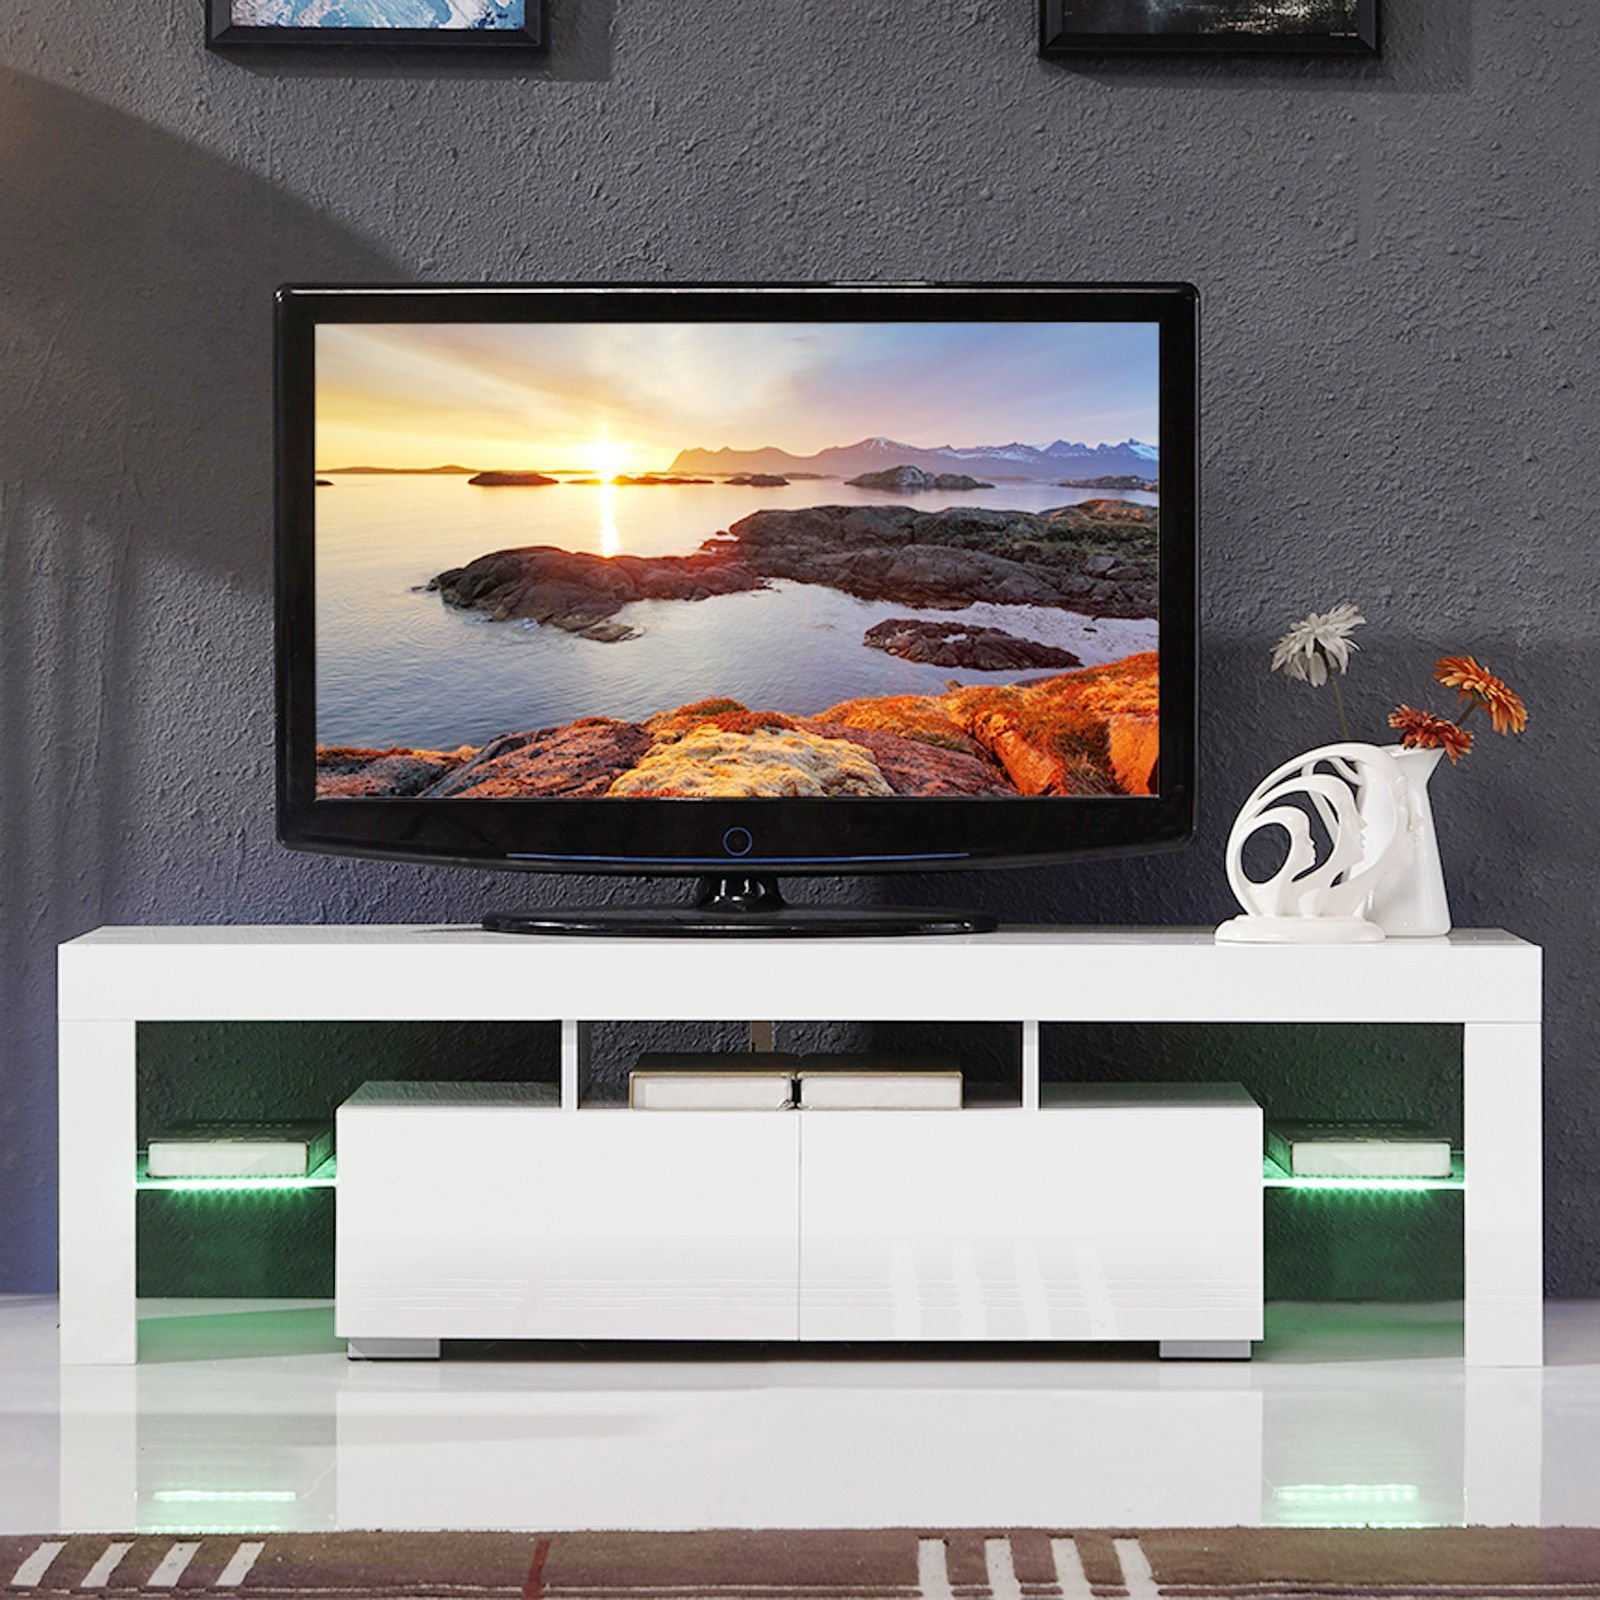 Furniture TV stand cabinet hi gloss modern style living room entertainment center with LED light Fit for up to 60'' flat TV screens by OHOJIDA